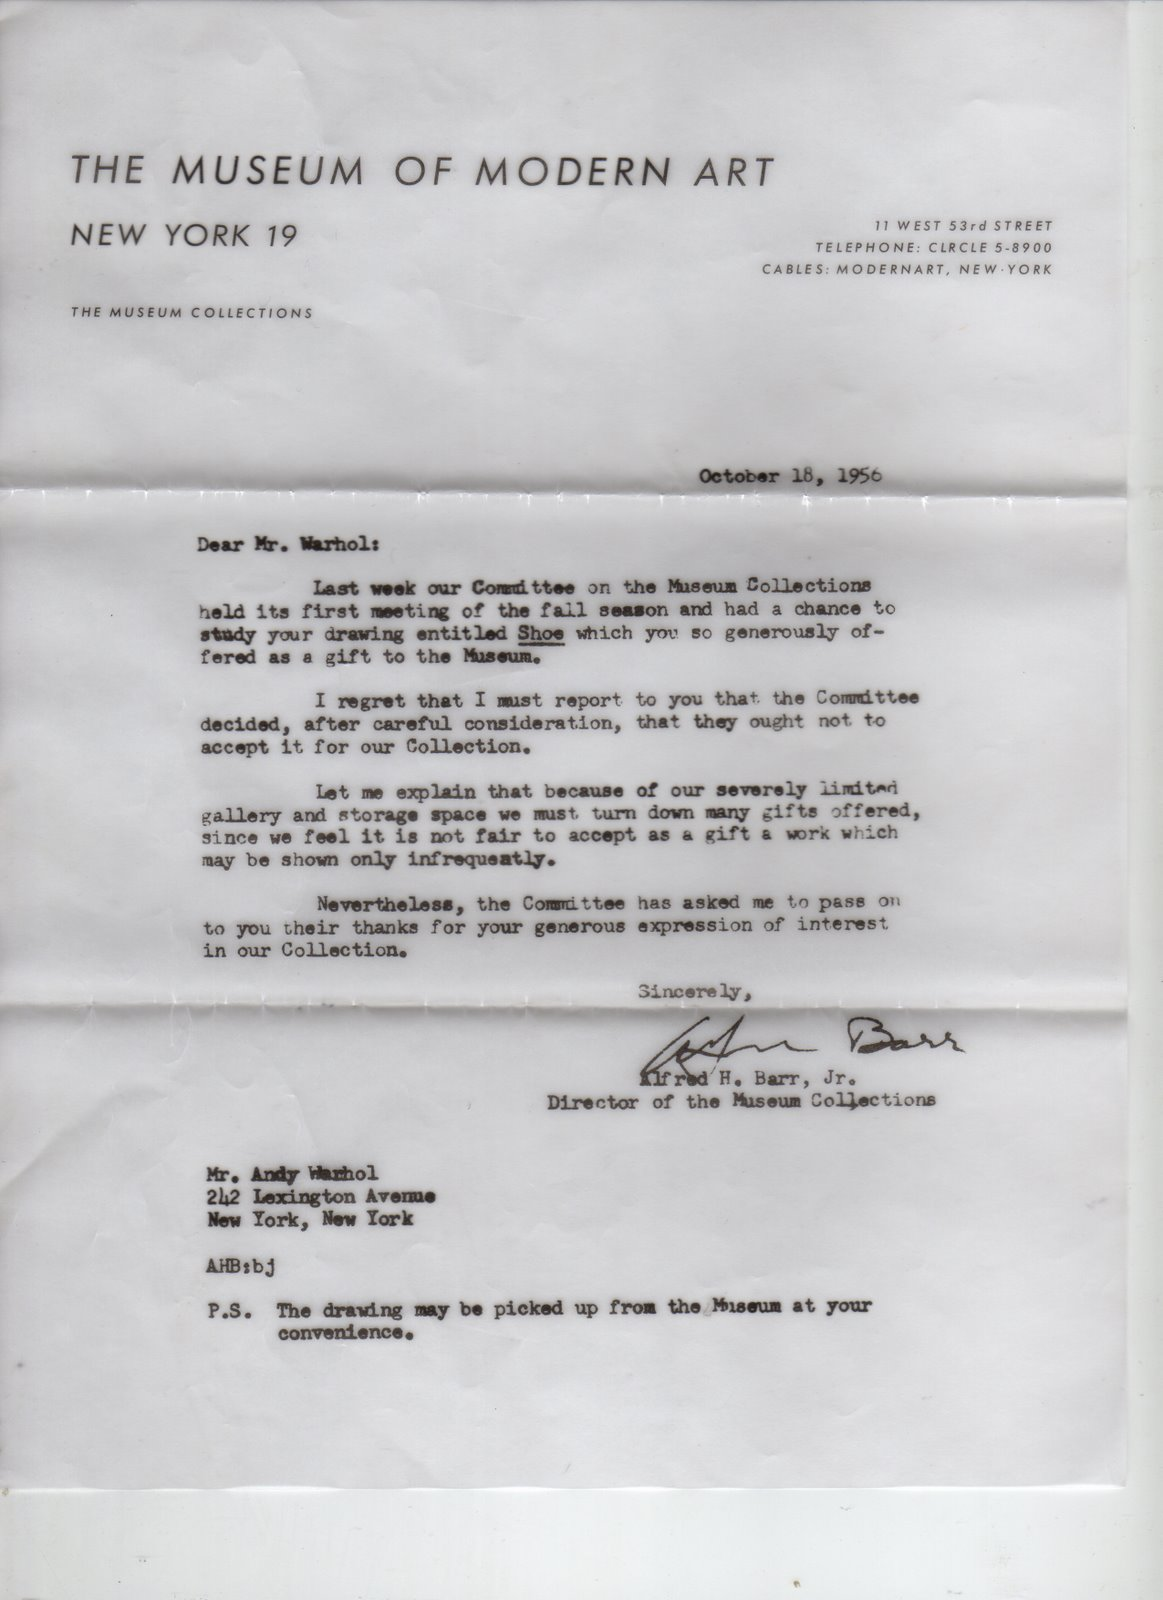 Andy Warhol rejection letter